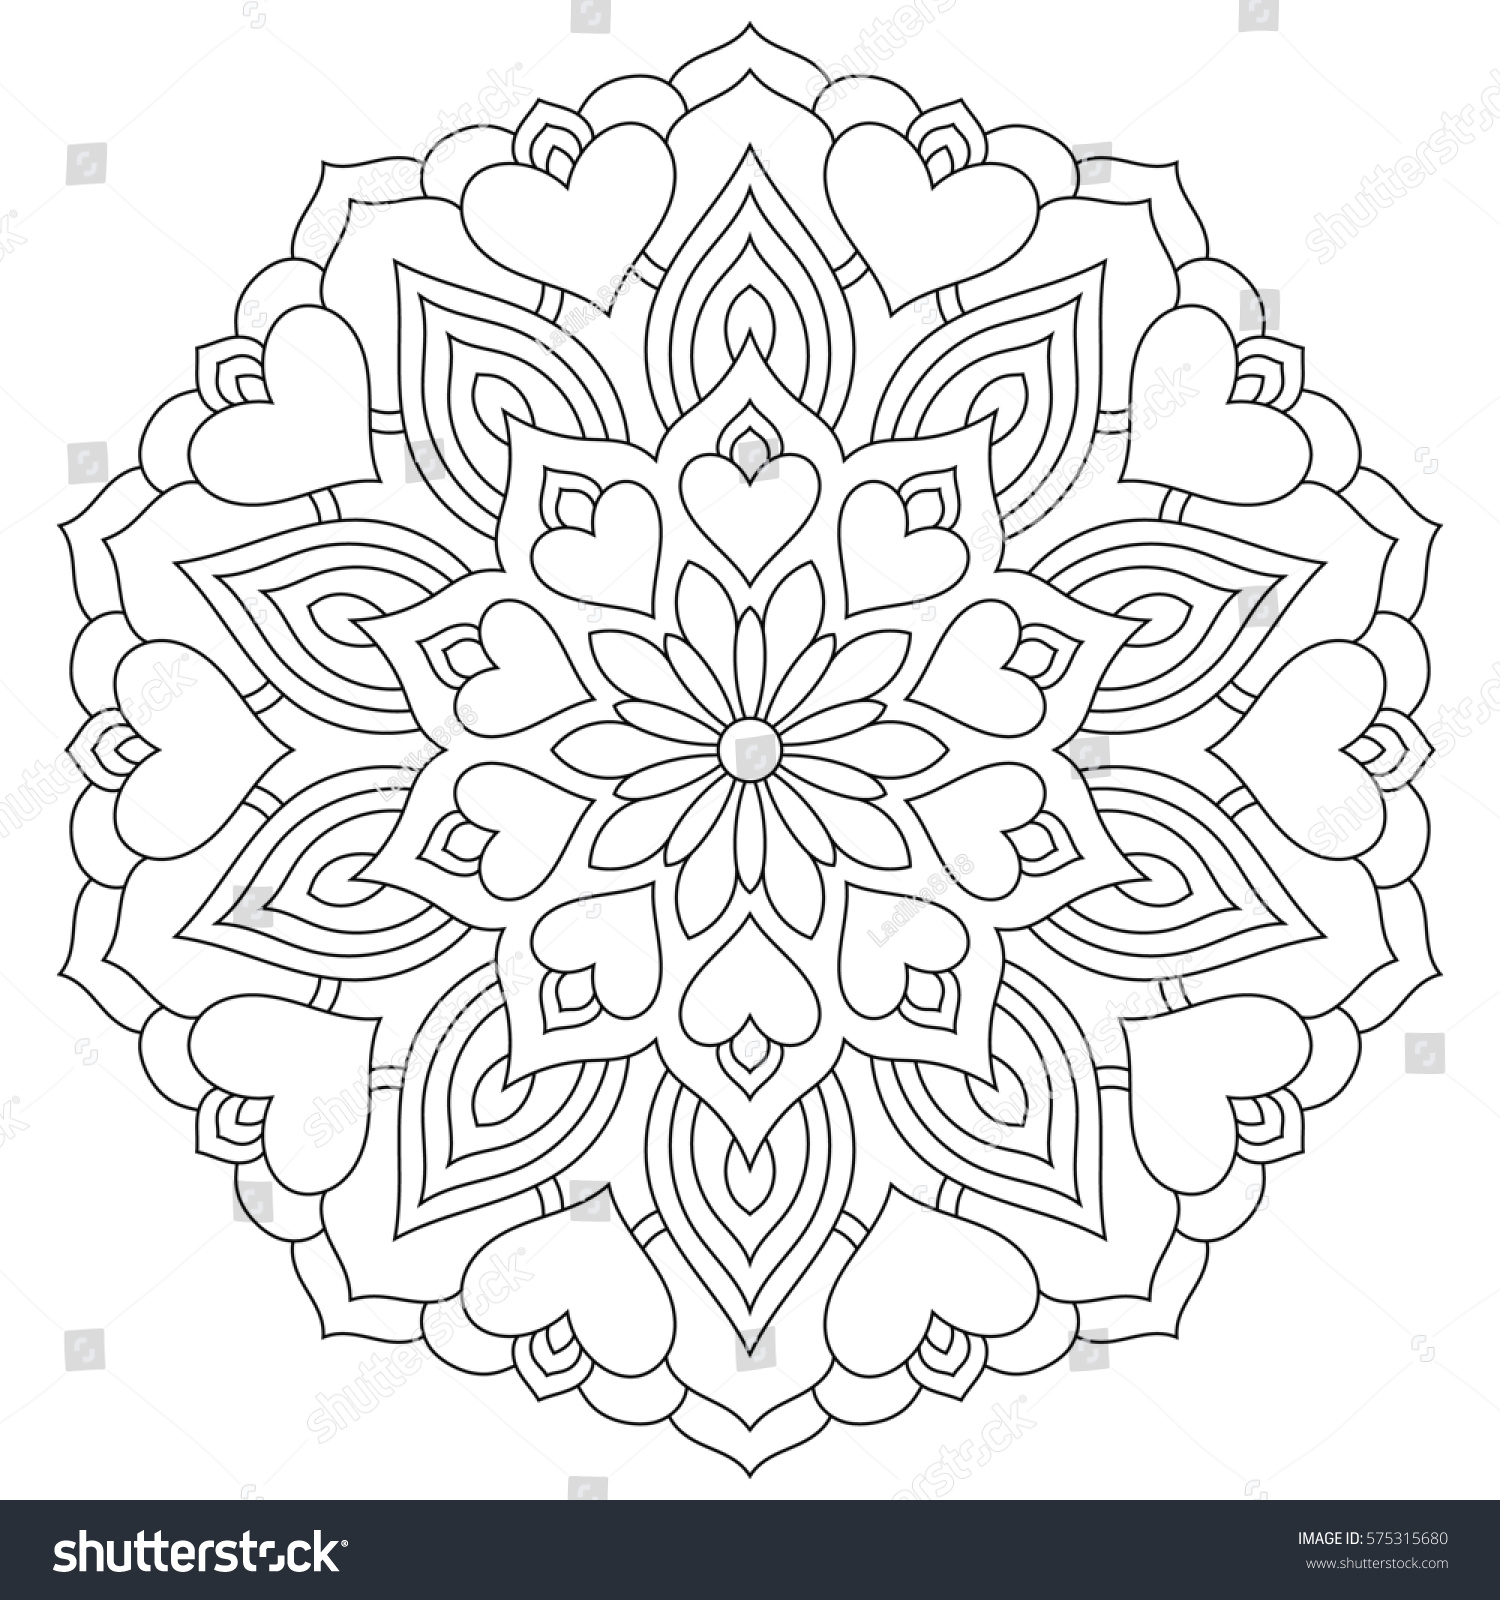 Flower Mandala Hearts Coloring Page Valentines Stock Illustration ...